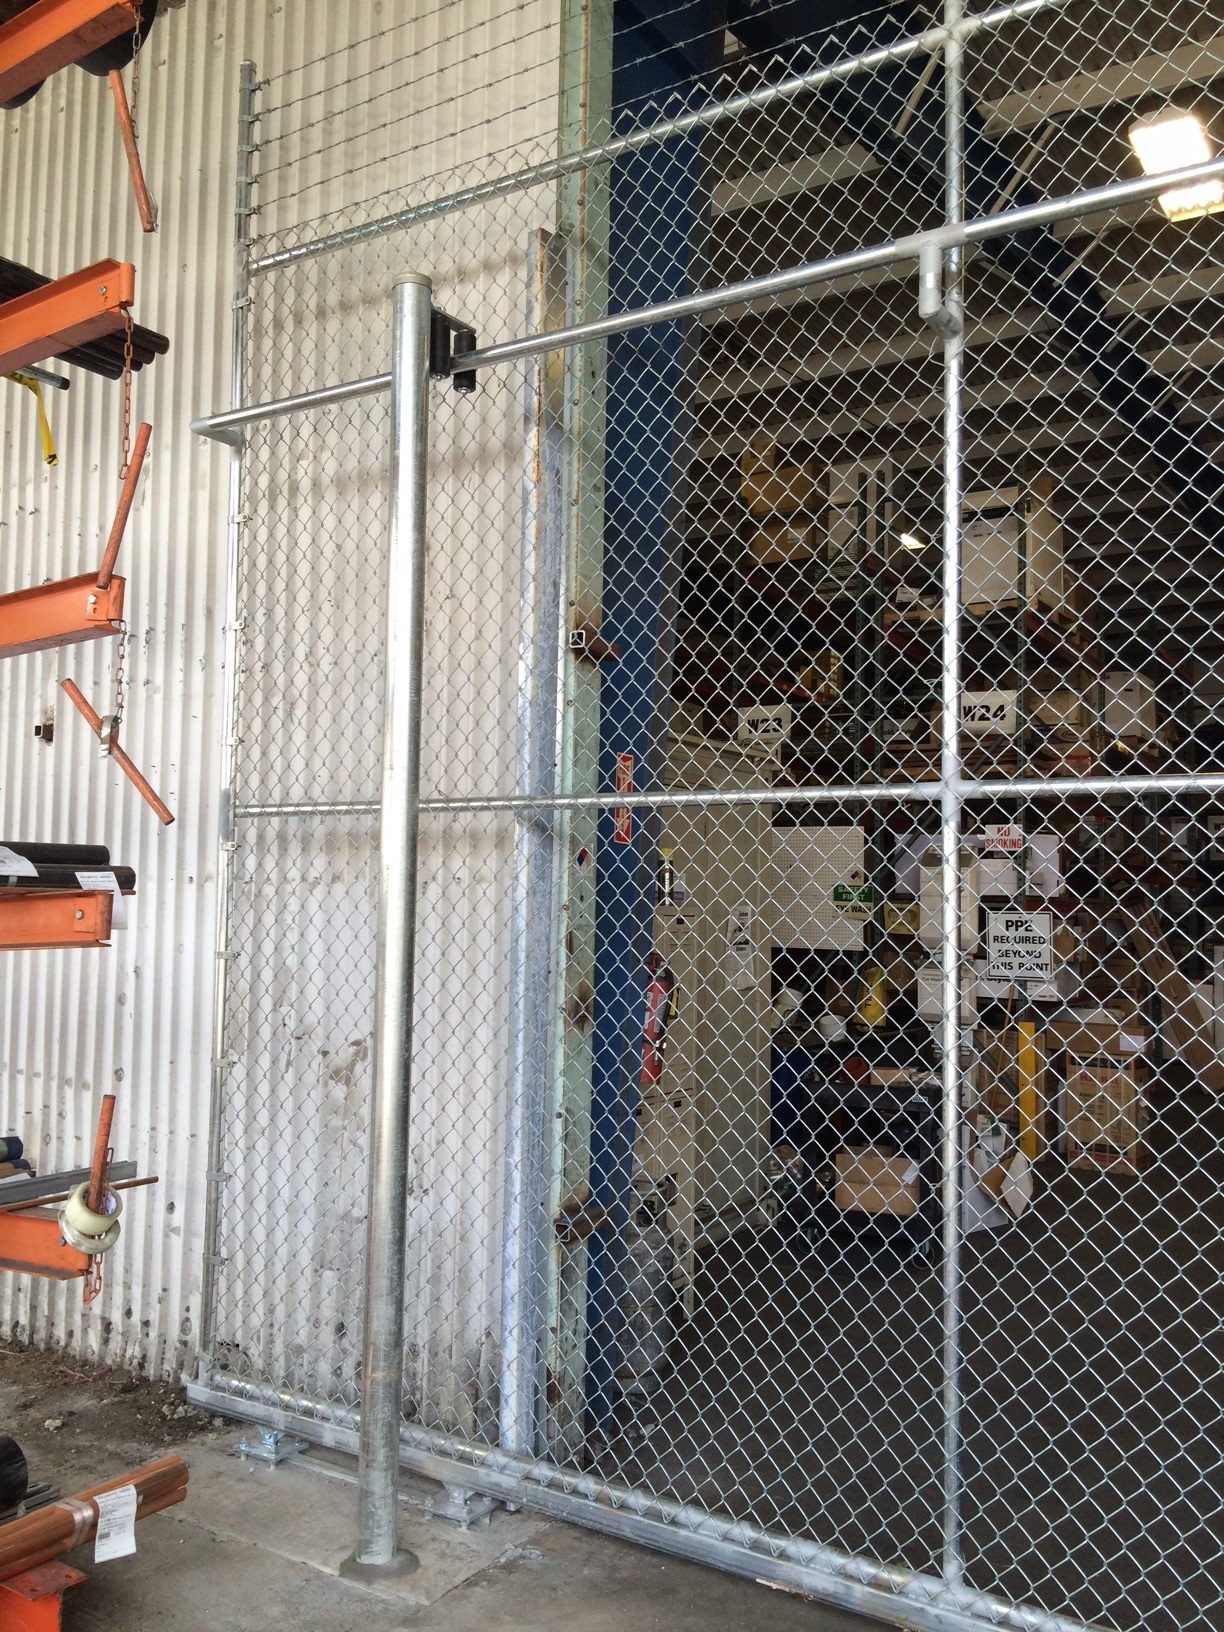 Warehouse Double Sliding Security Gate Duragates The